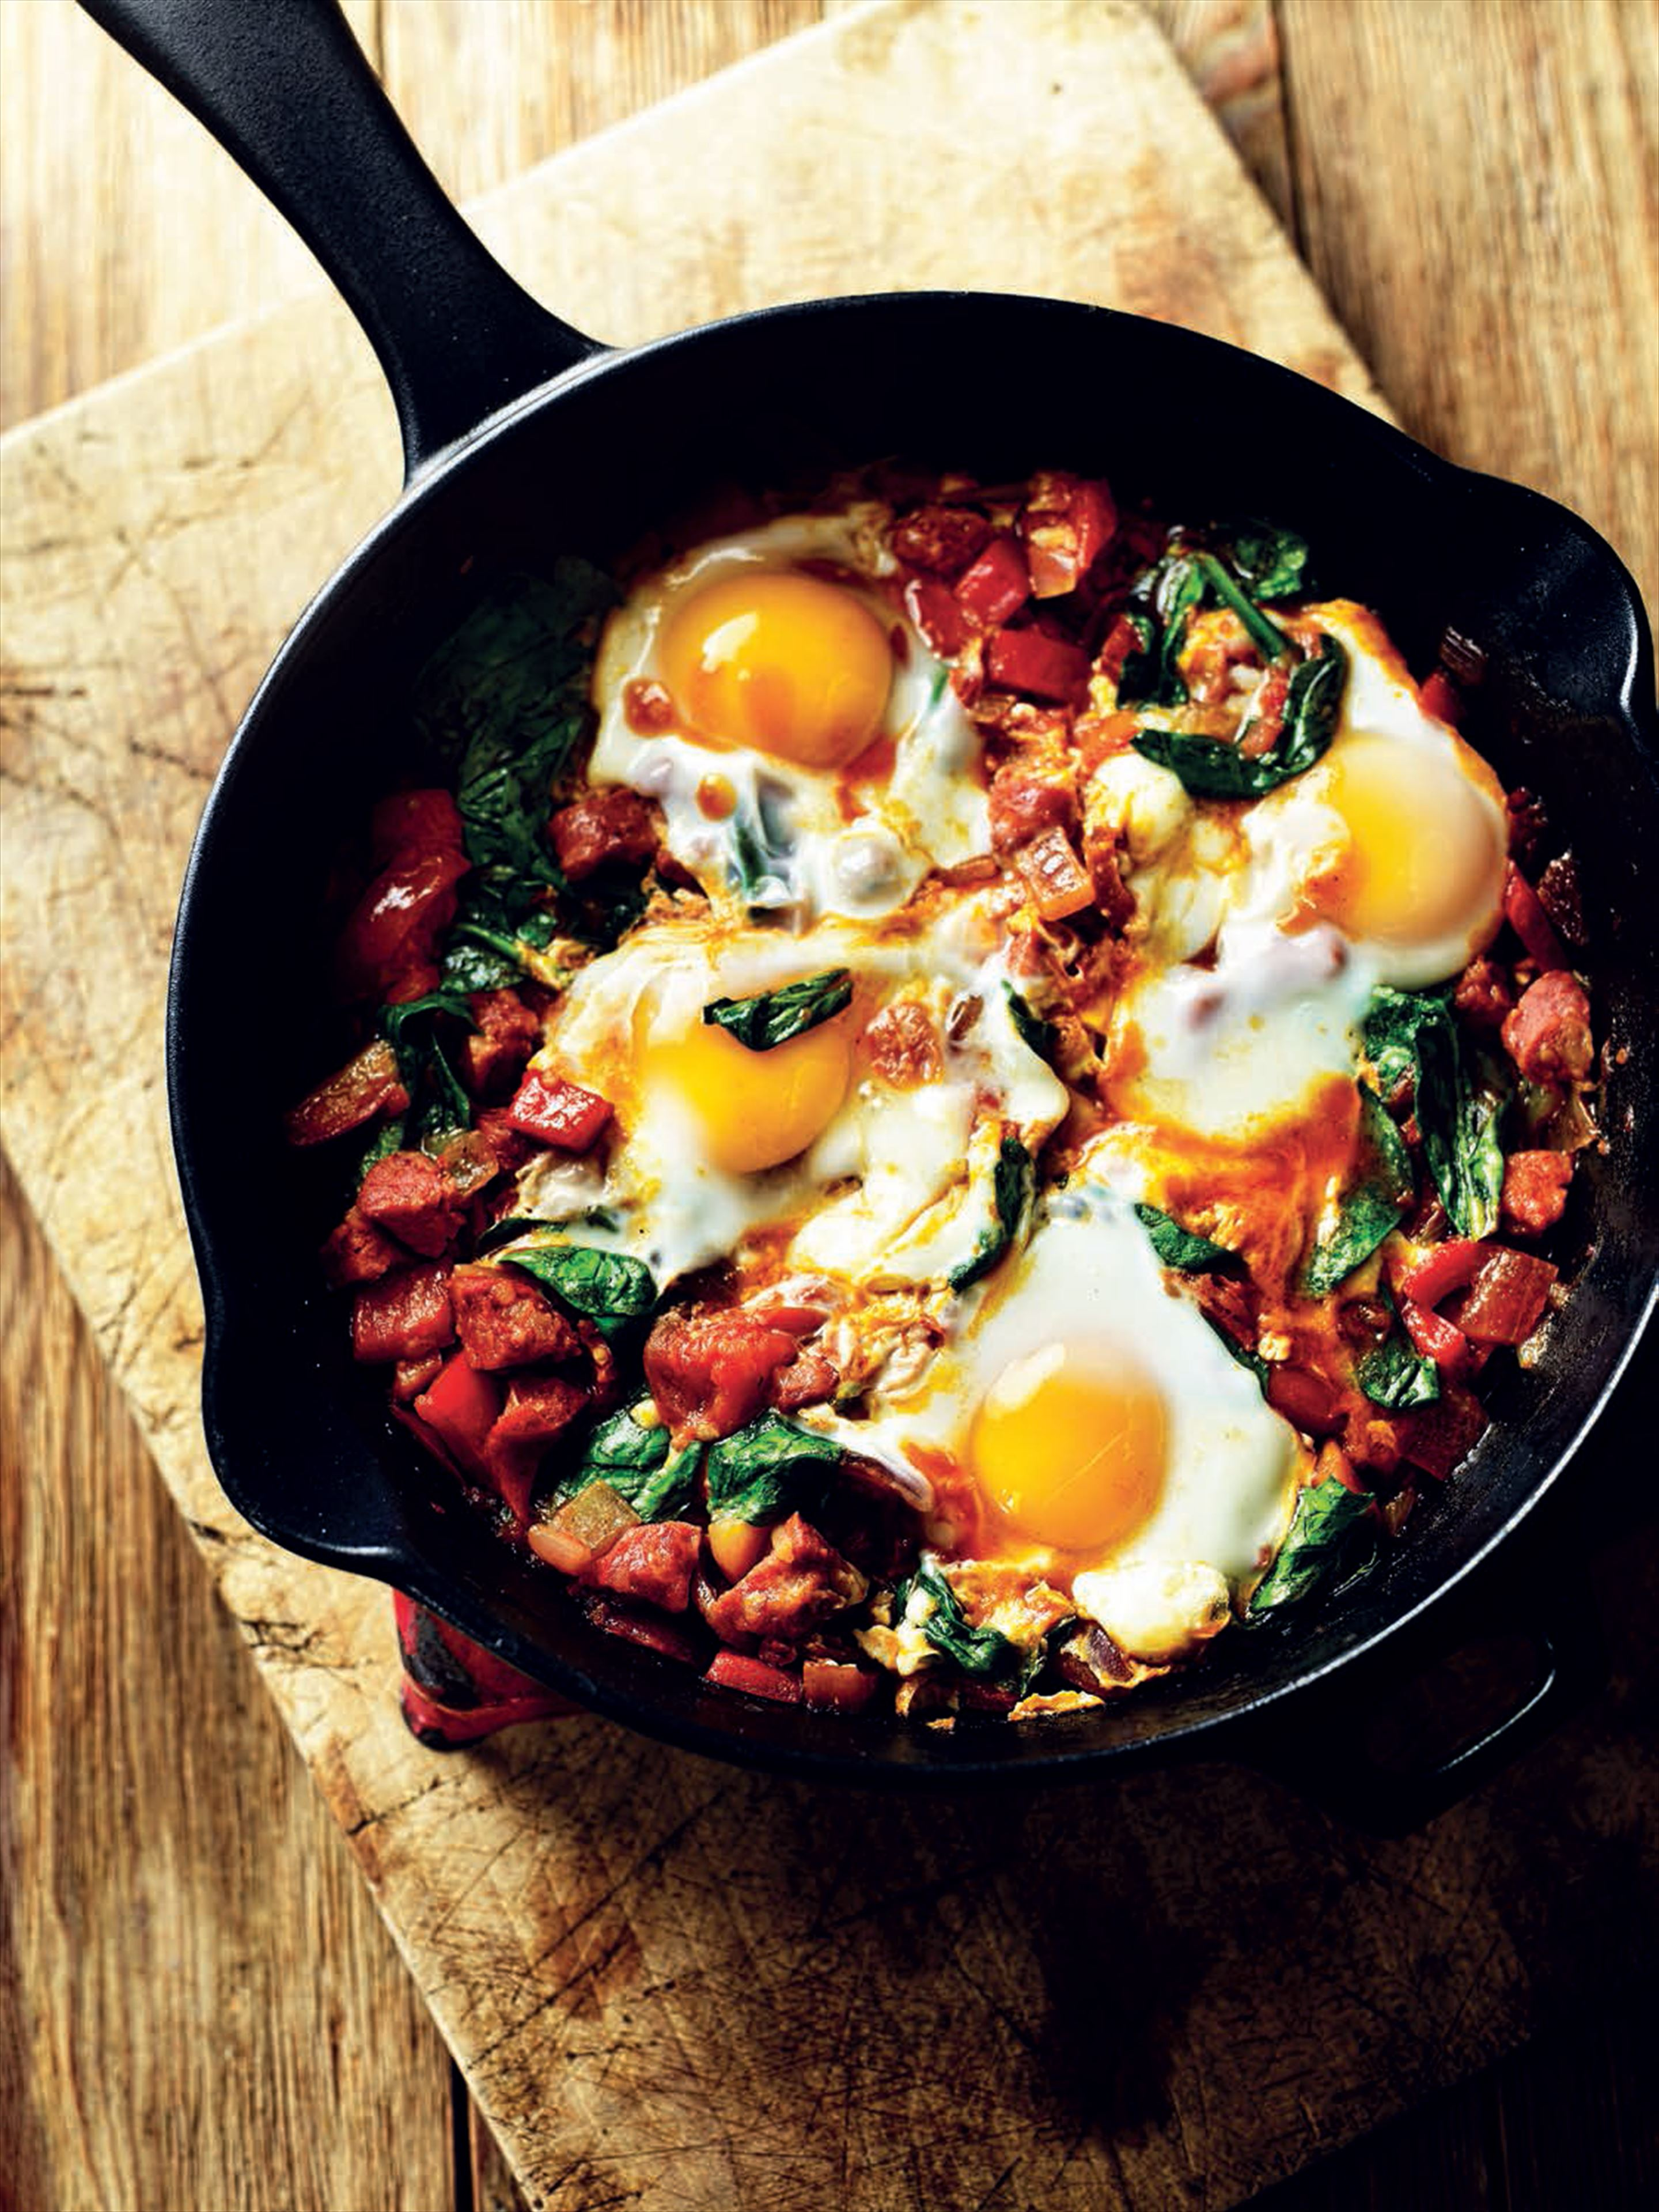 Baked eggs with chorizo, tomato, peppers and spinach